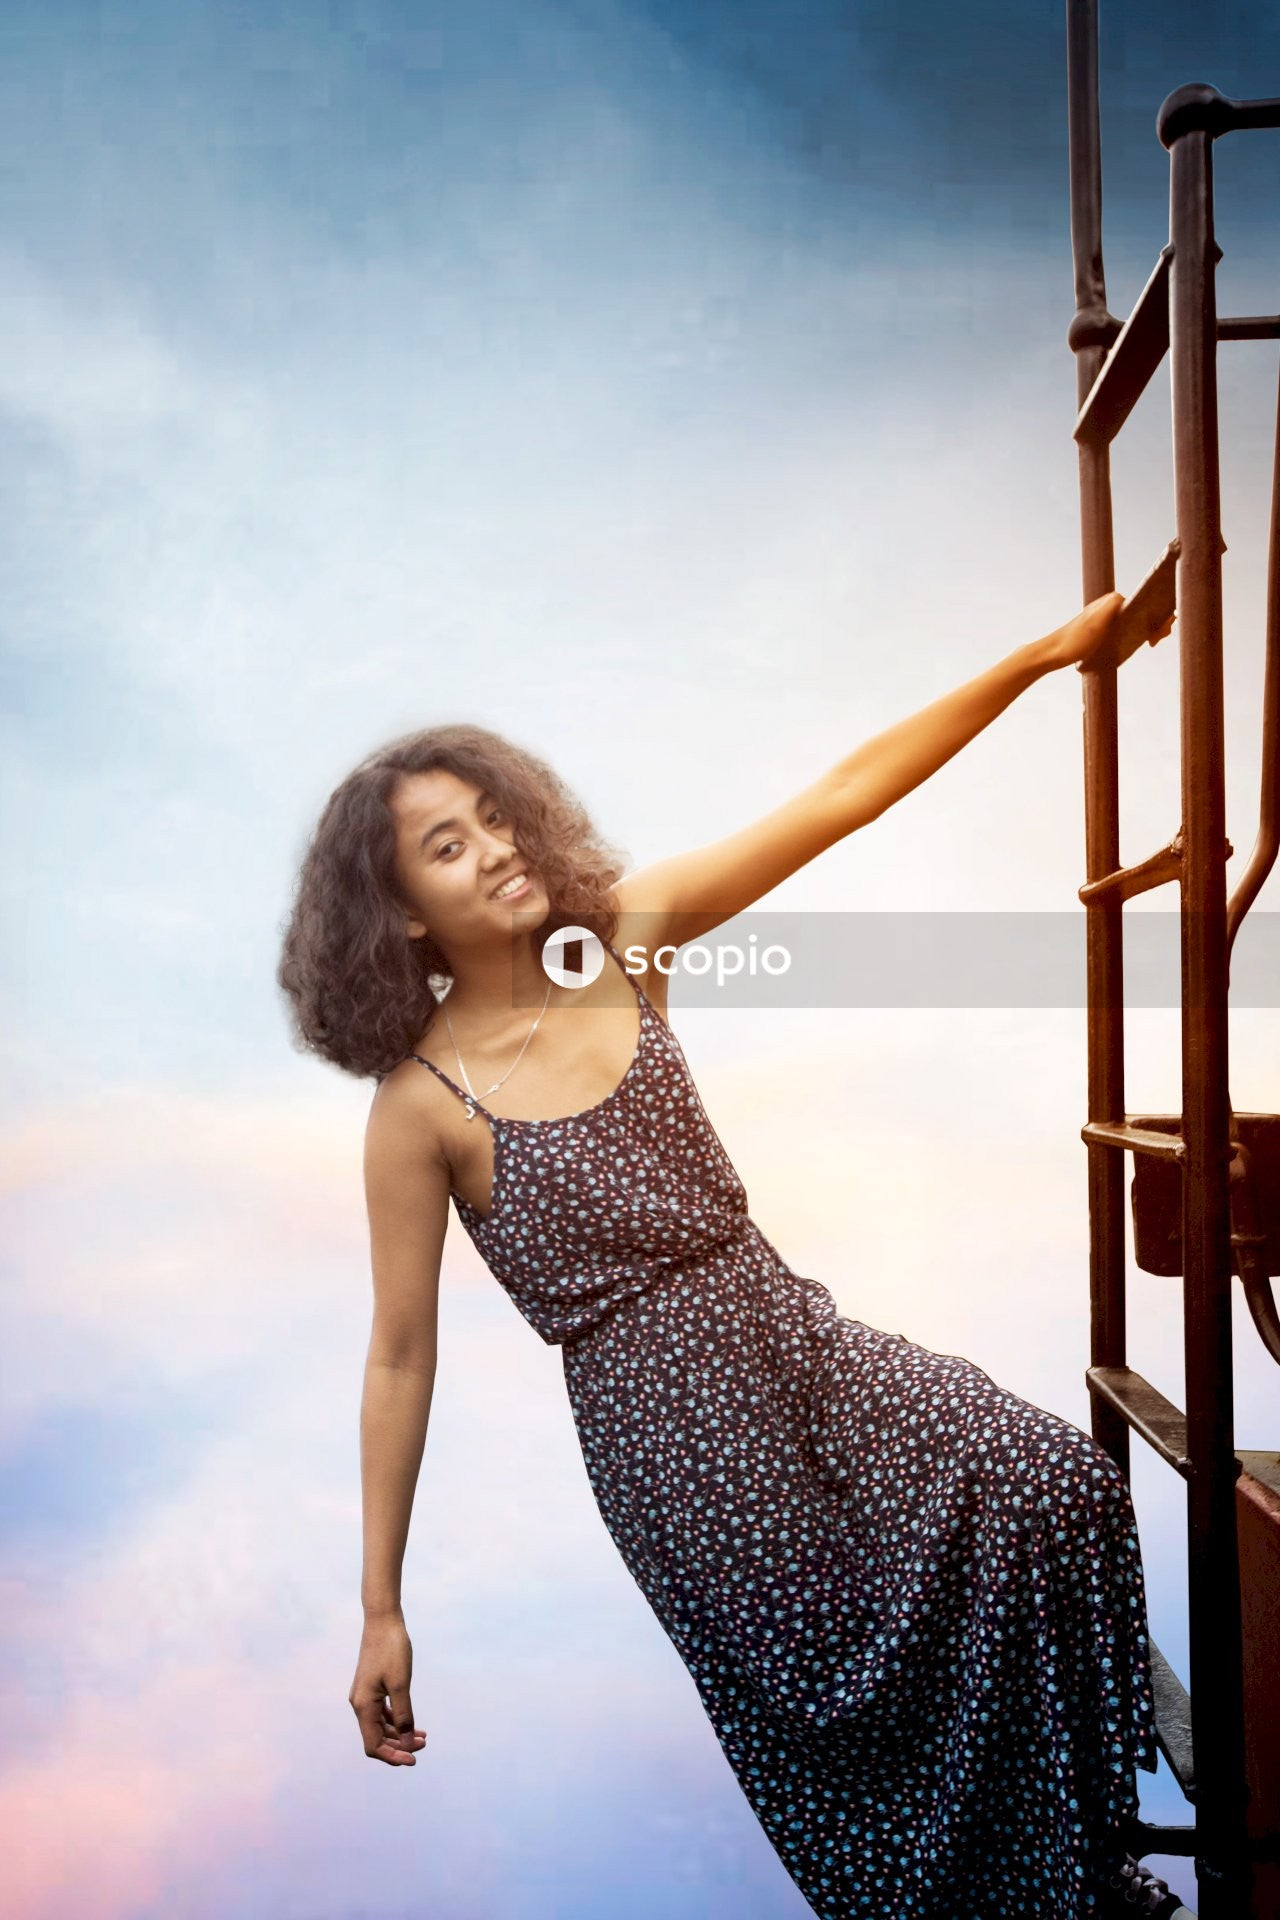 Woman in black and white polka dot spaghetti strap dress standing on ladder